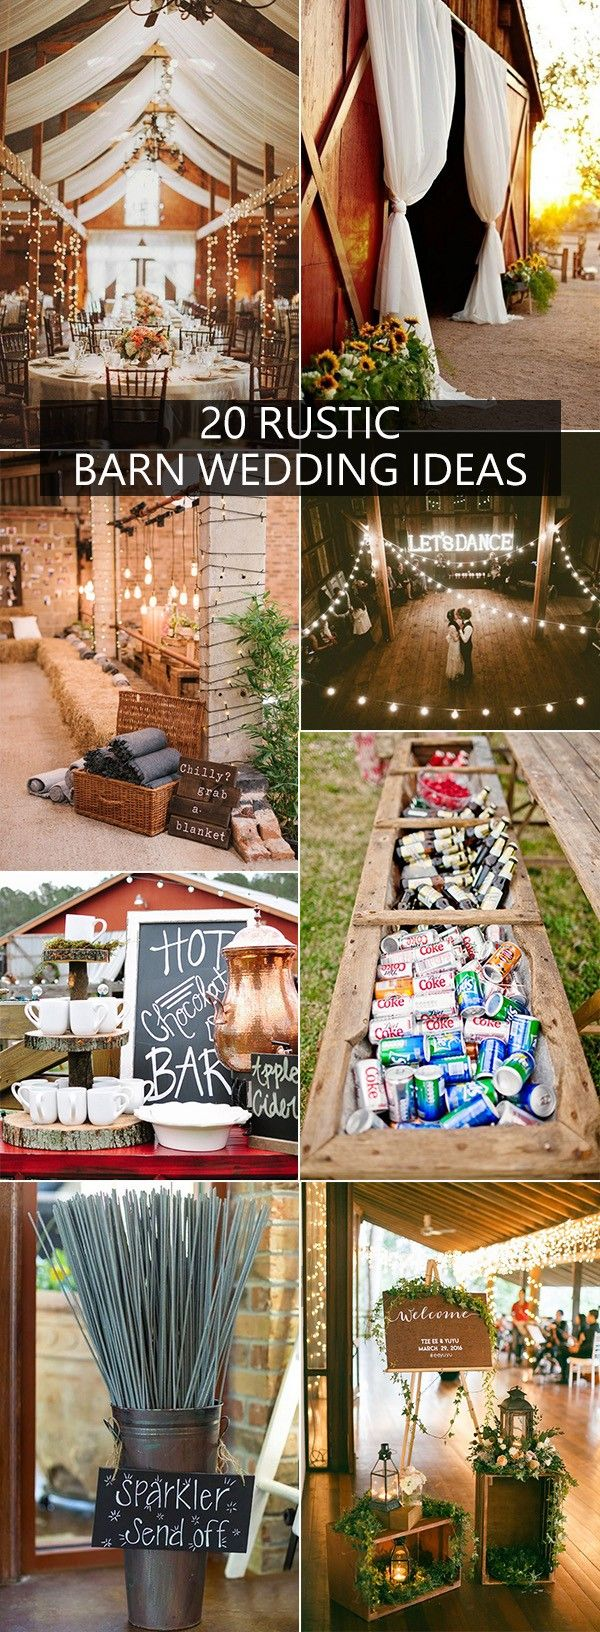 Wedding decorations trees with lights october 2018  Gorgeous Ideas for a Rustic Barn Wedding  Party ideas